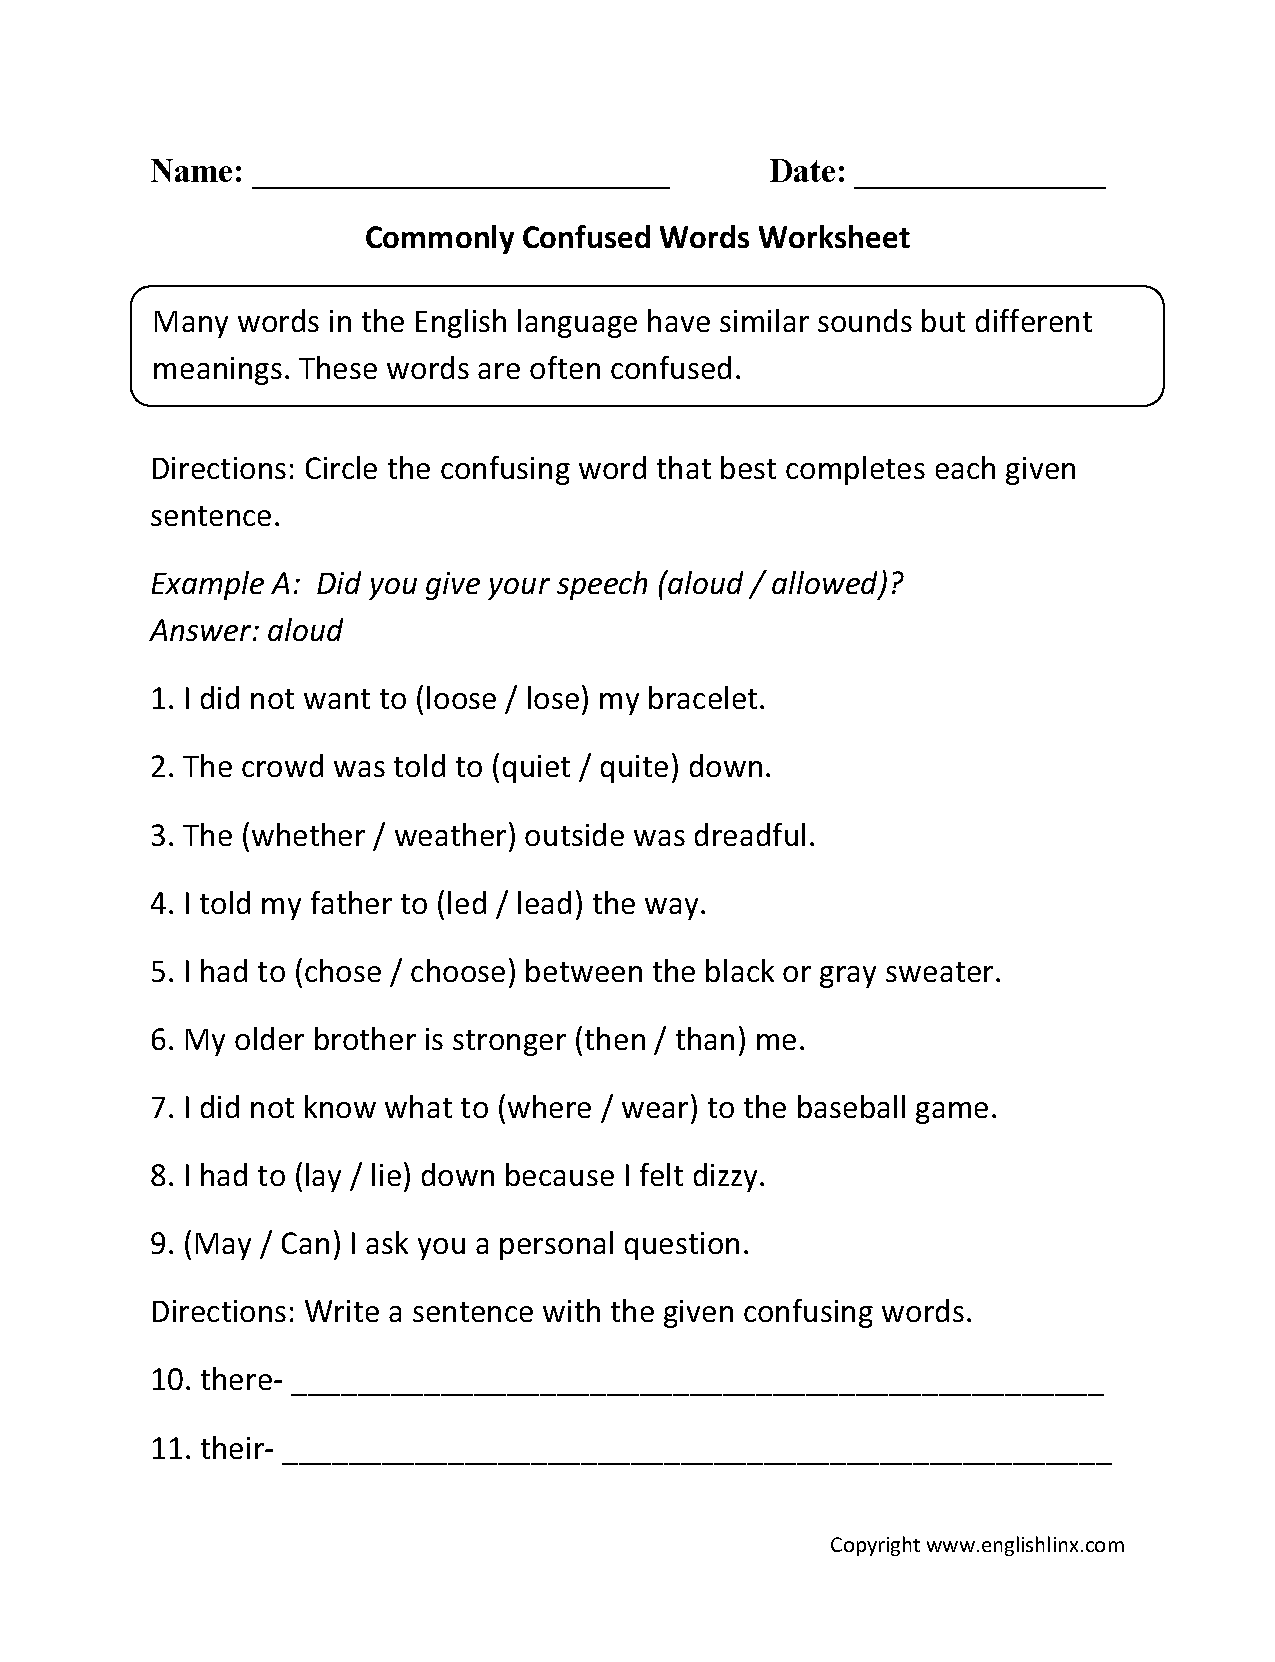 Beginner Commonly Confused Words Worksheets